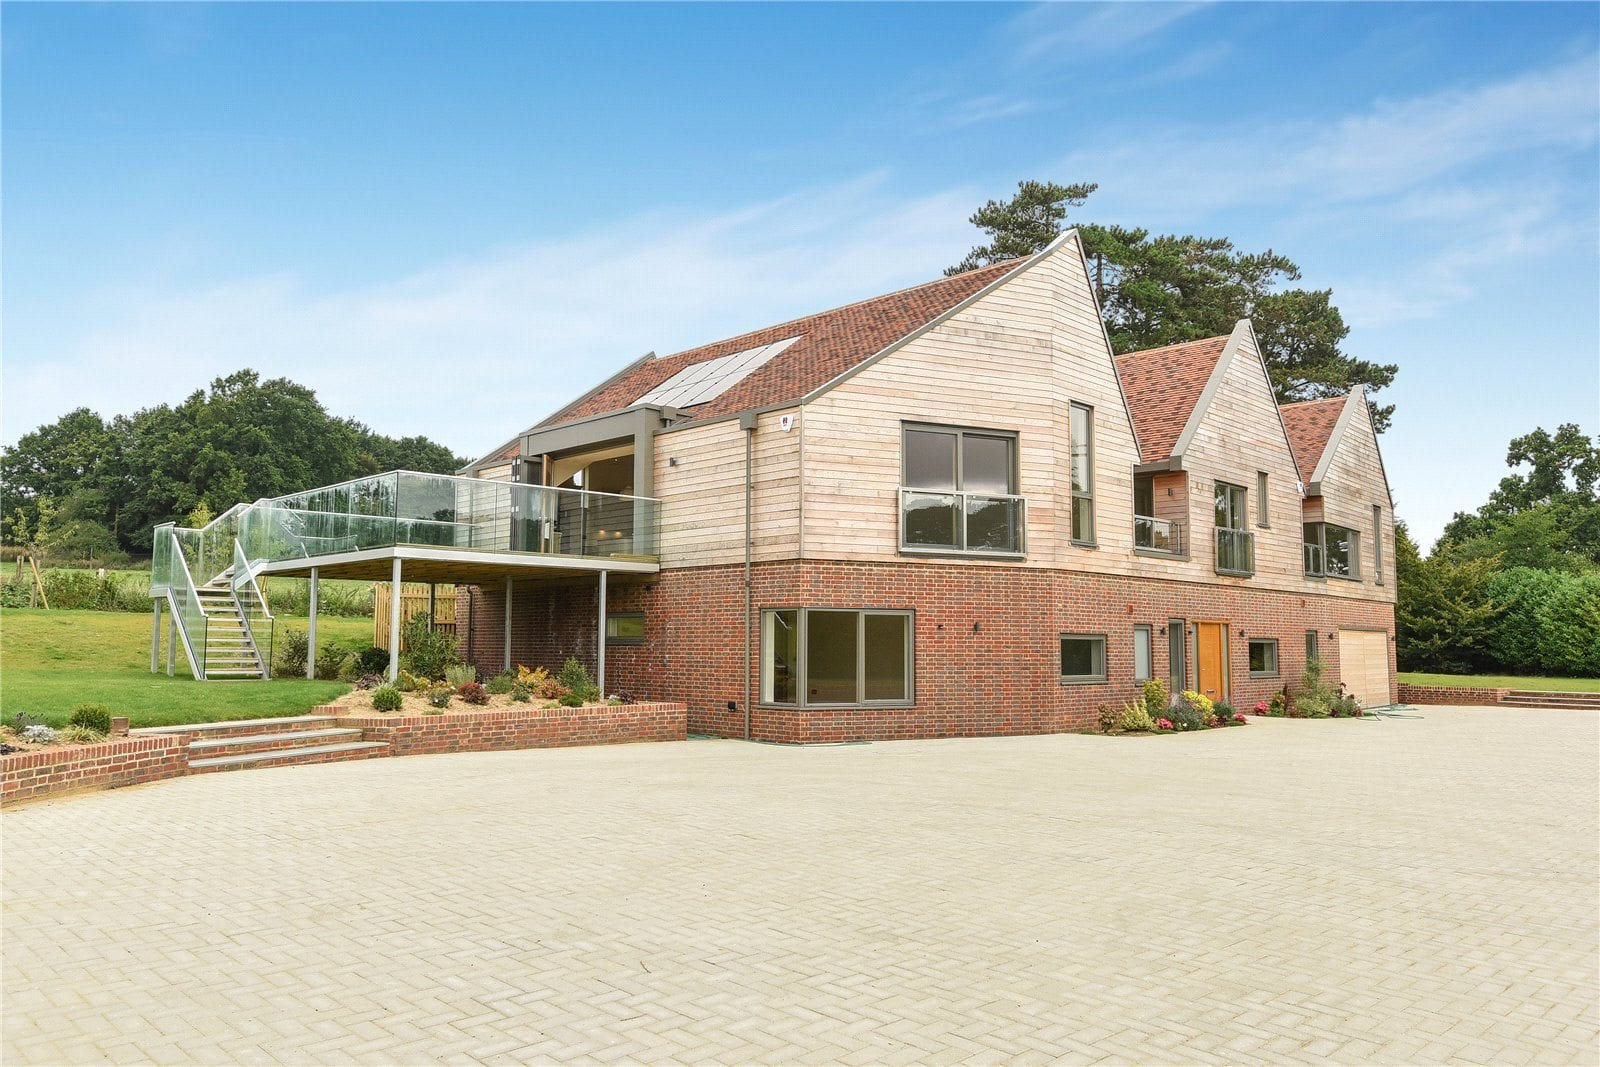 Westcoast Windows supply their Swedish designed and manufactured composite windows for contemporary home in the South Downs